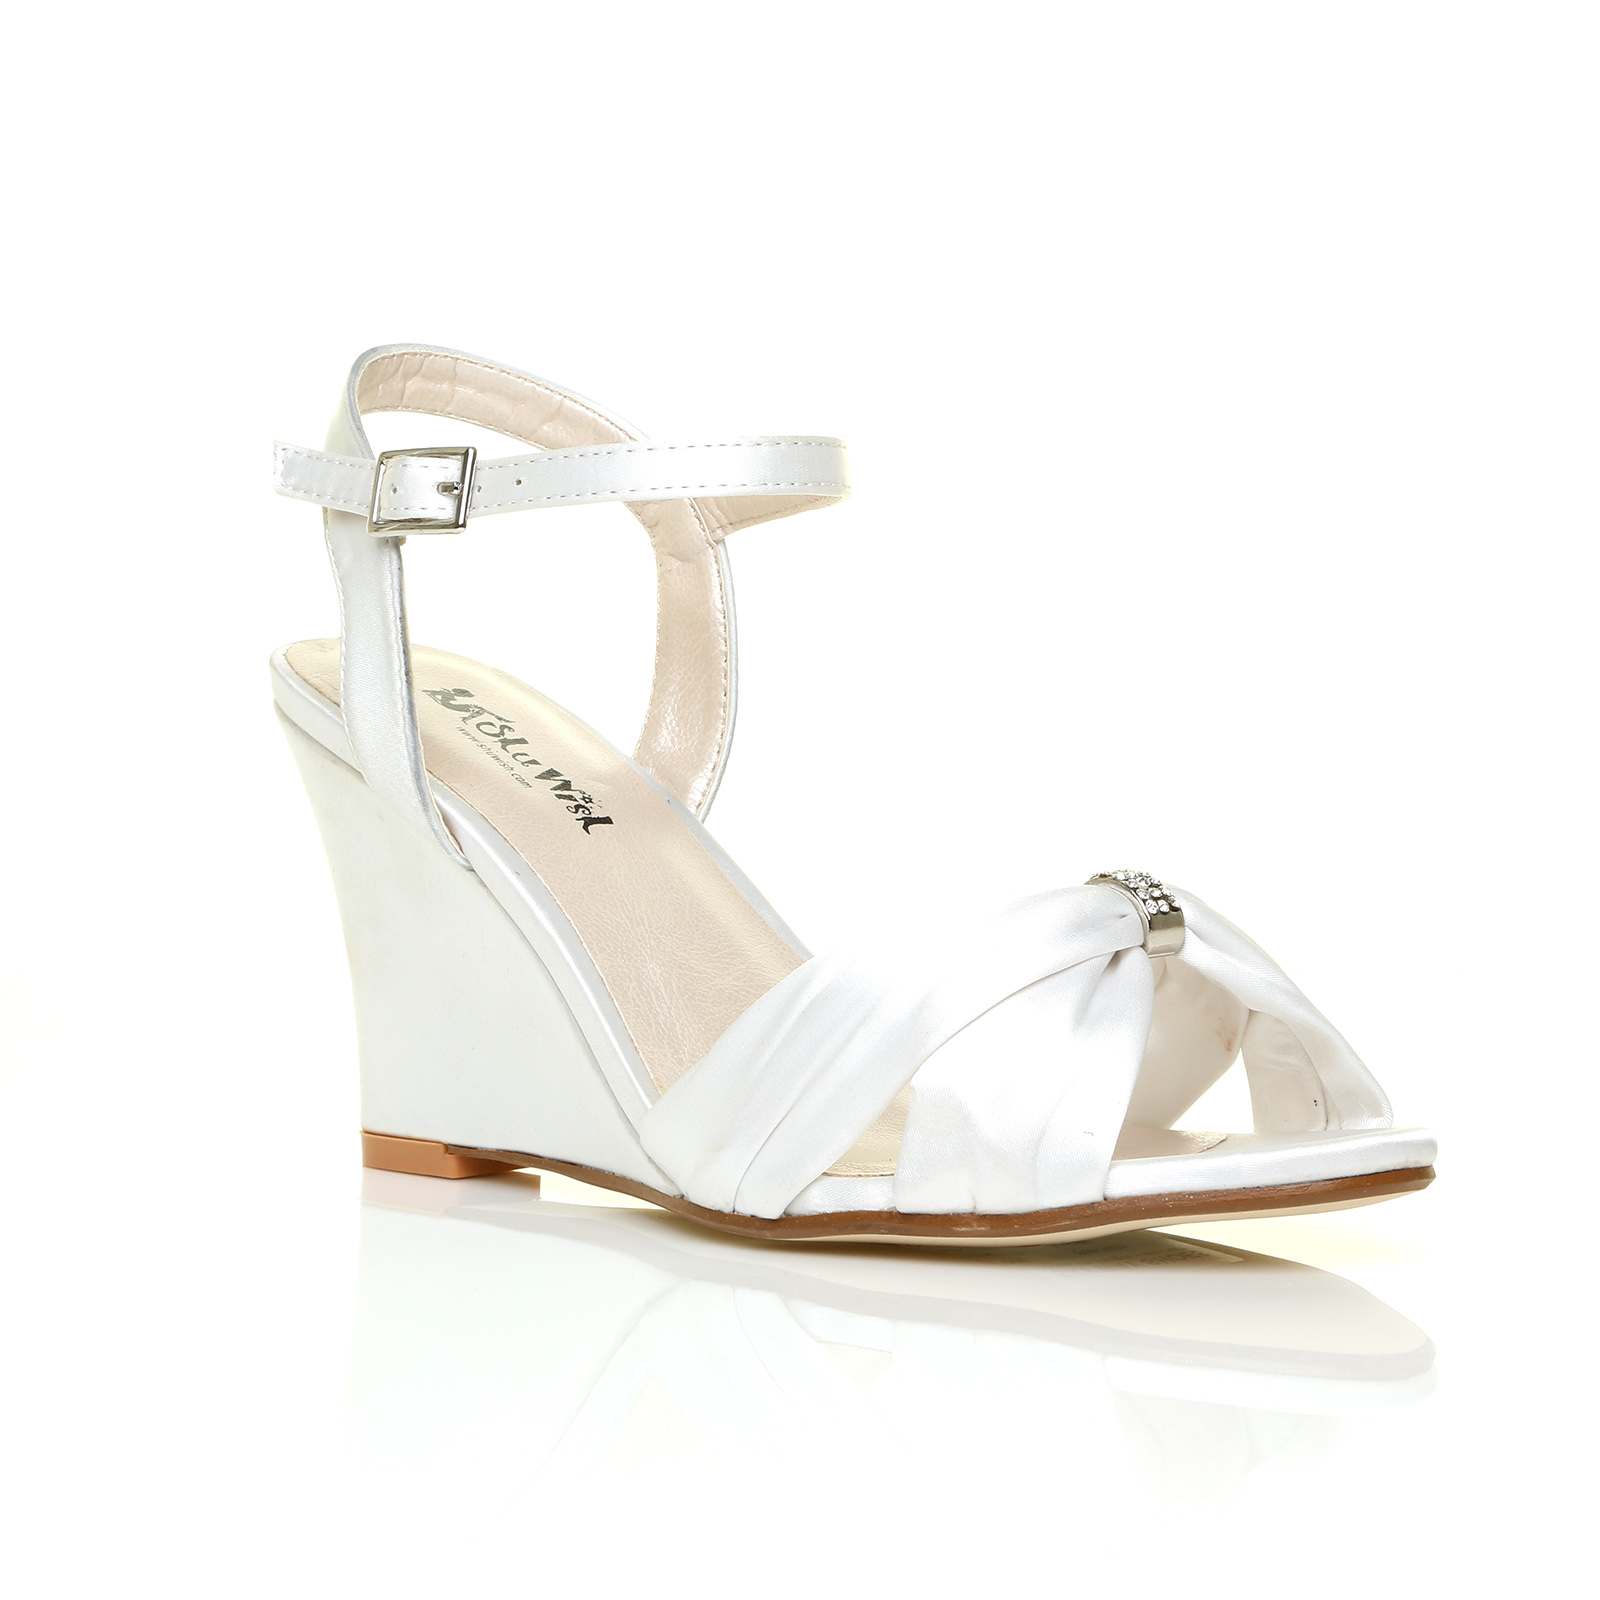 WOMENS BRIDAL WEDDING HIGH WEDGE LADIES IVORY WHITE SILVER PROM PARTY SHOES SIZE